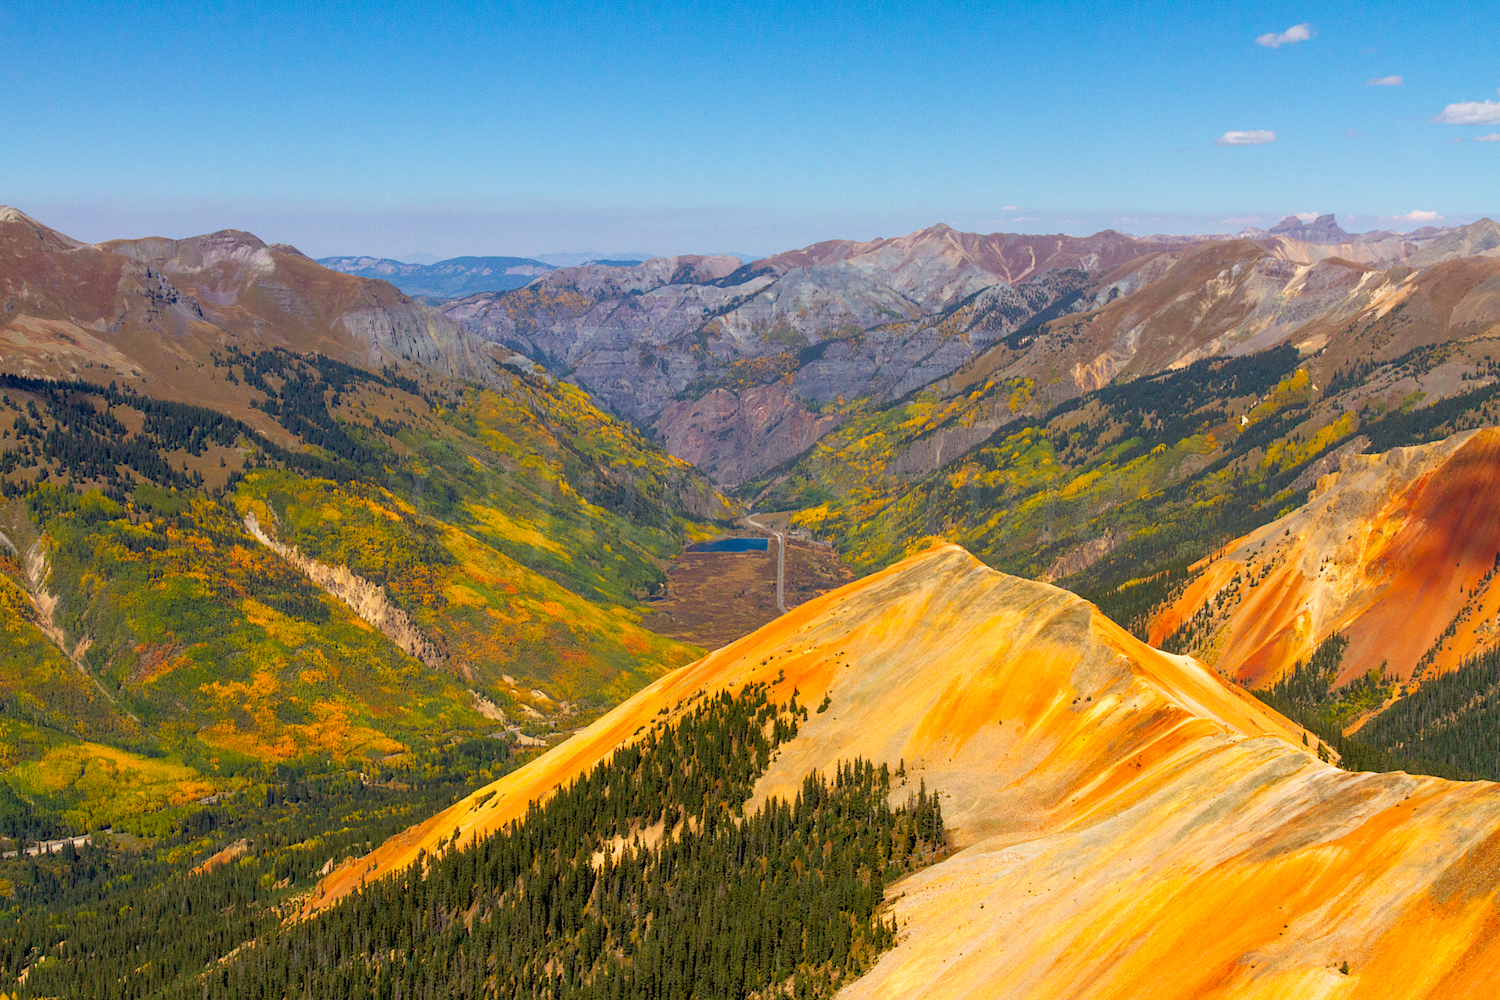 Red Mountain #3, Image # 6298